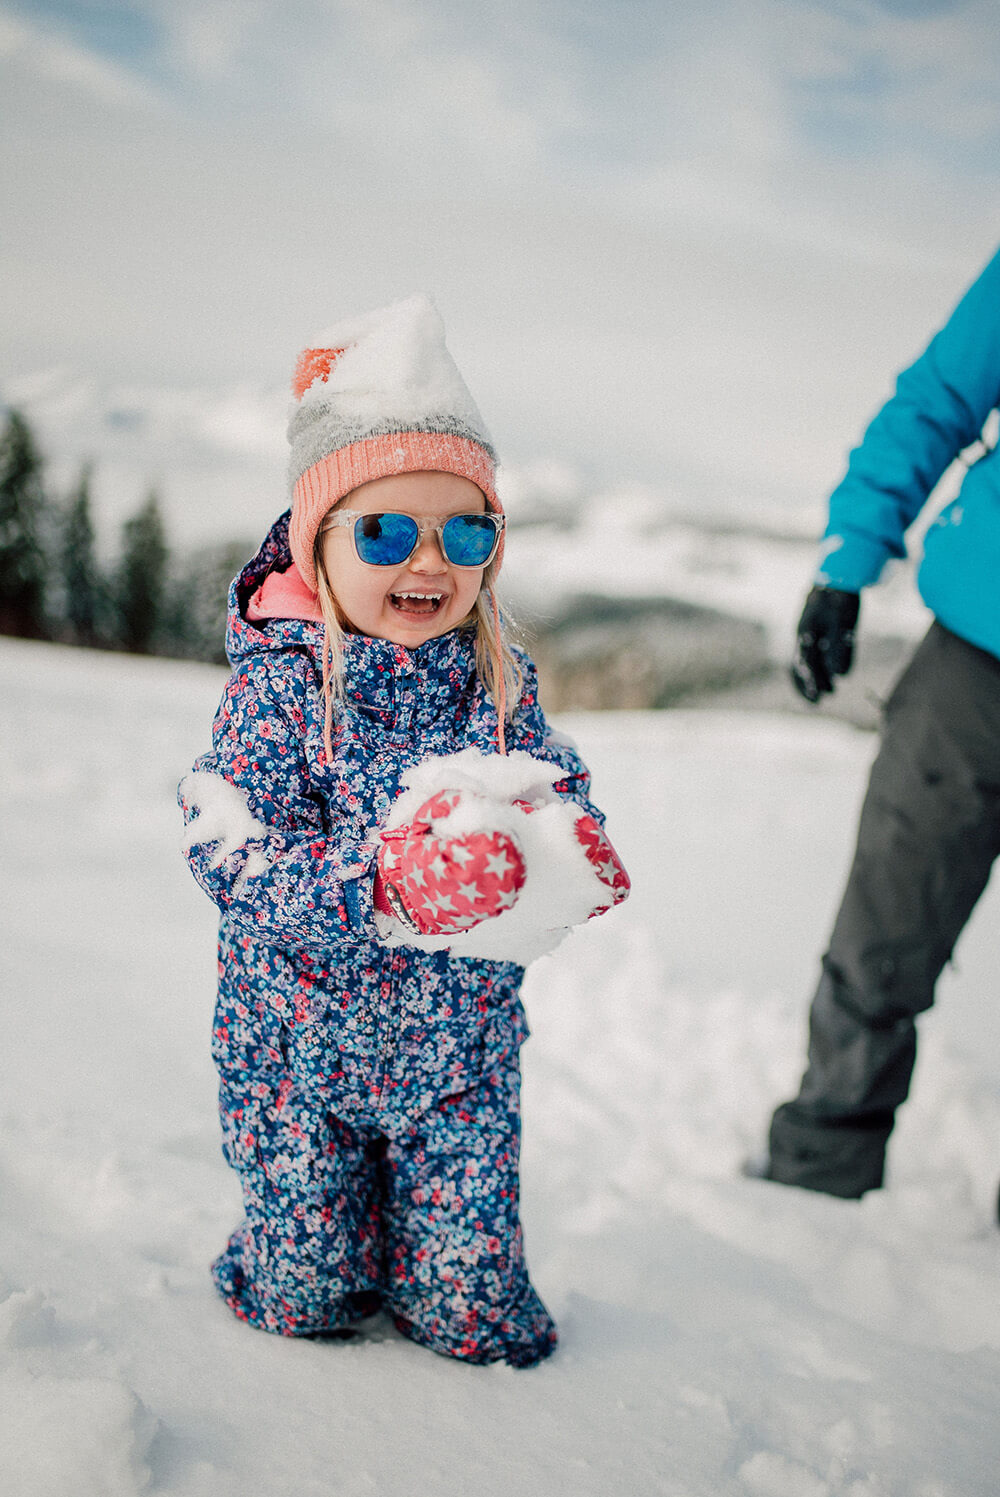 cute kid with a snowball and sun glasses at Avoriaz, French Alps